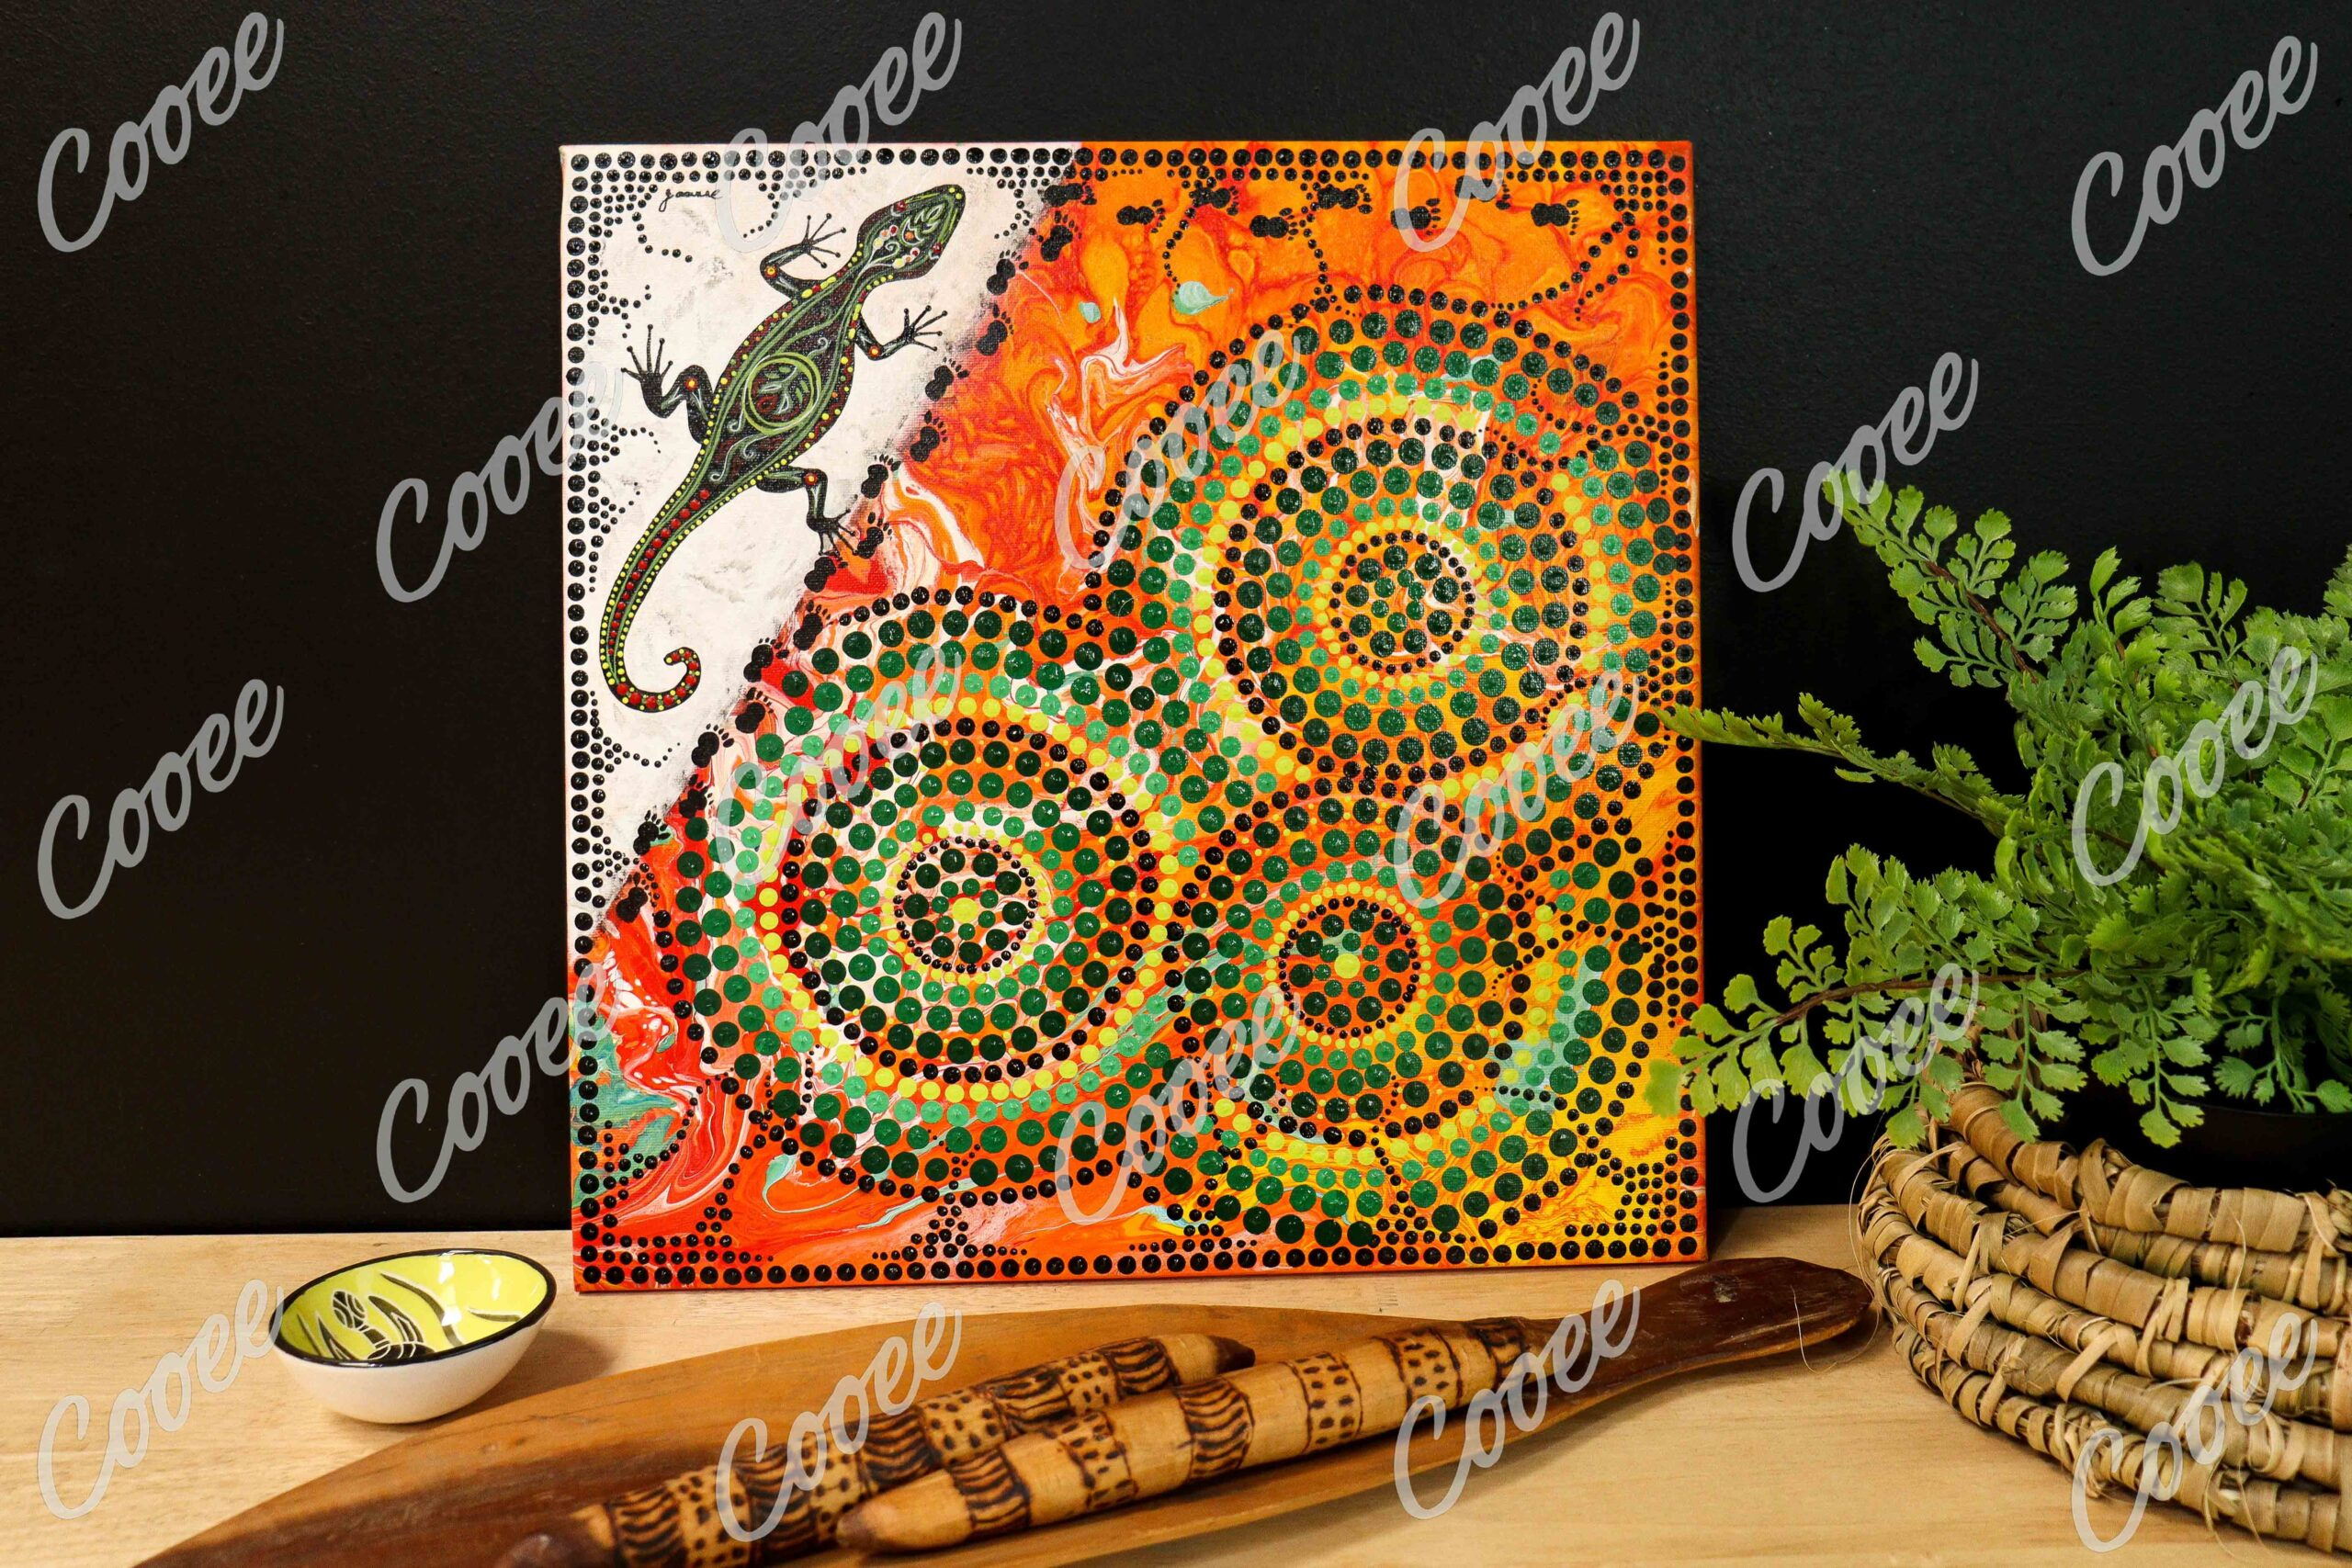 Cooee-Cafe-Original-Indigenous-Painting15